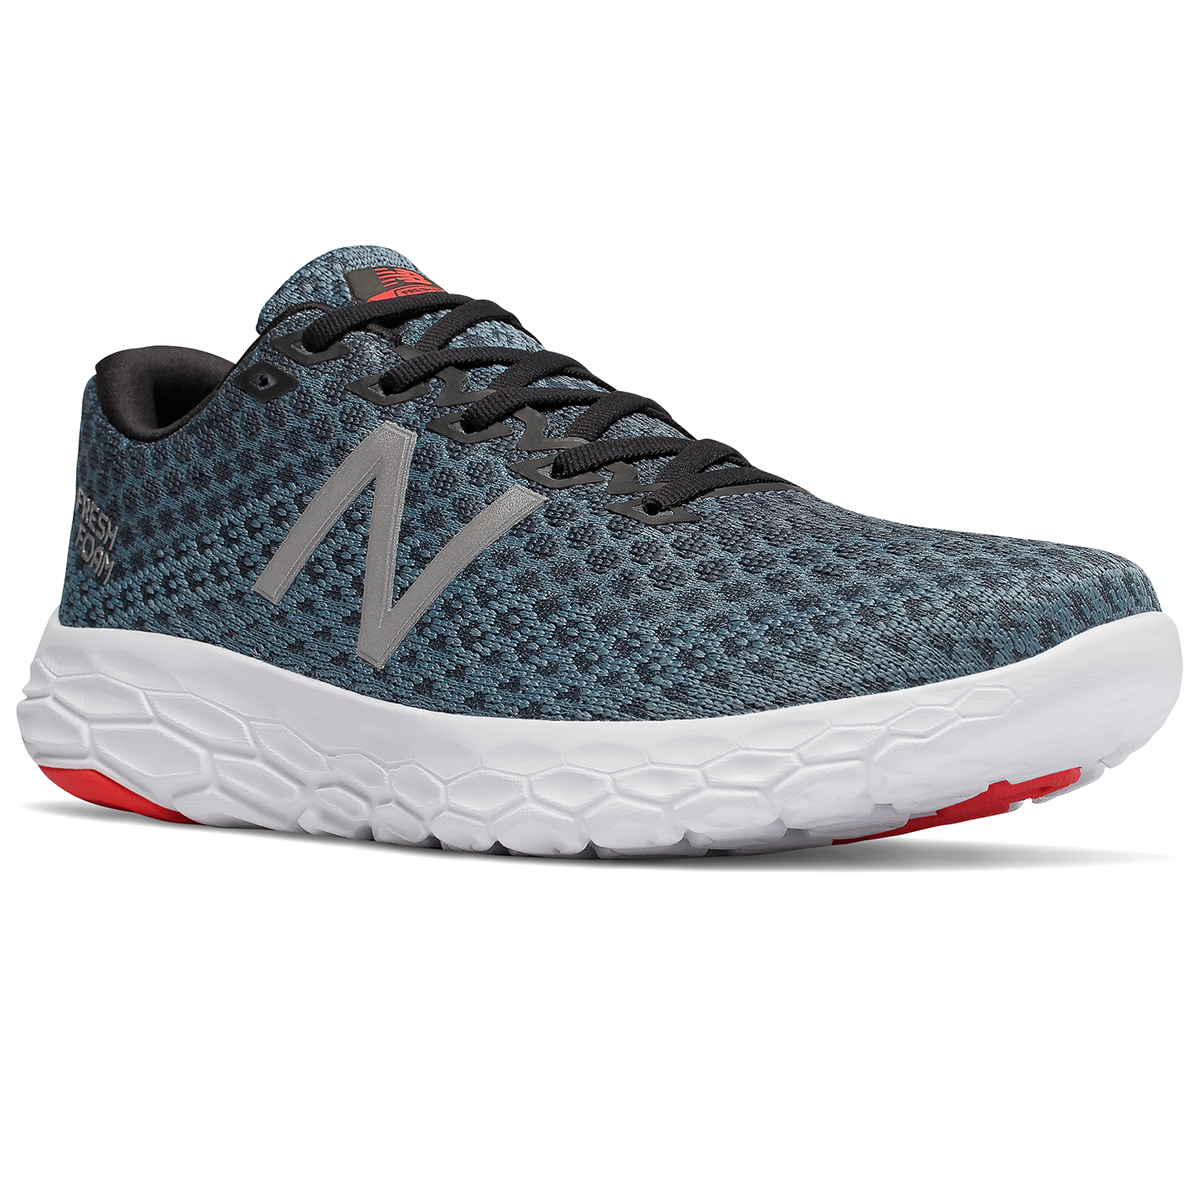 New Balance Men's Fresh Foam Beacon Running Shoes - Black, 12